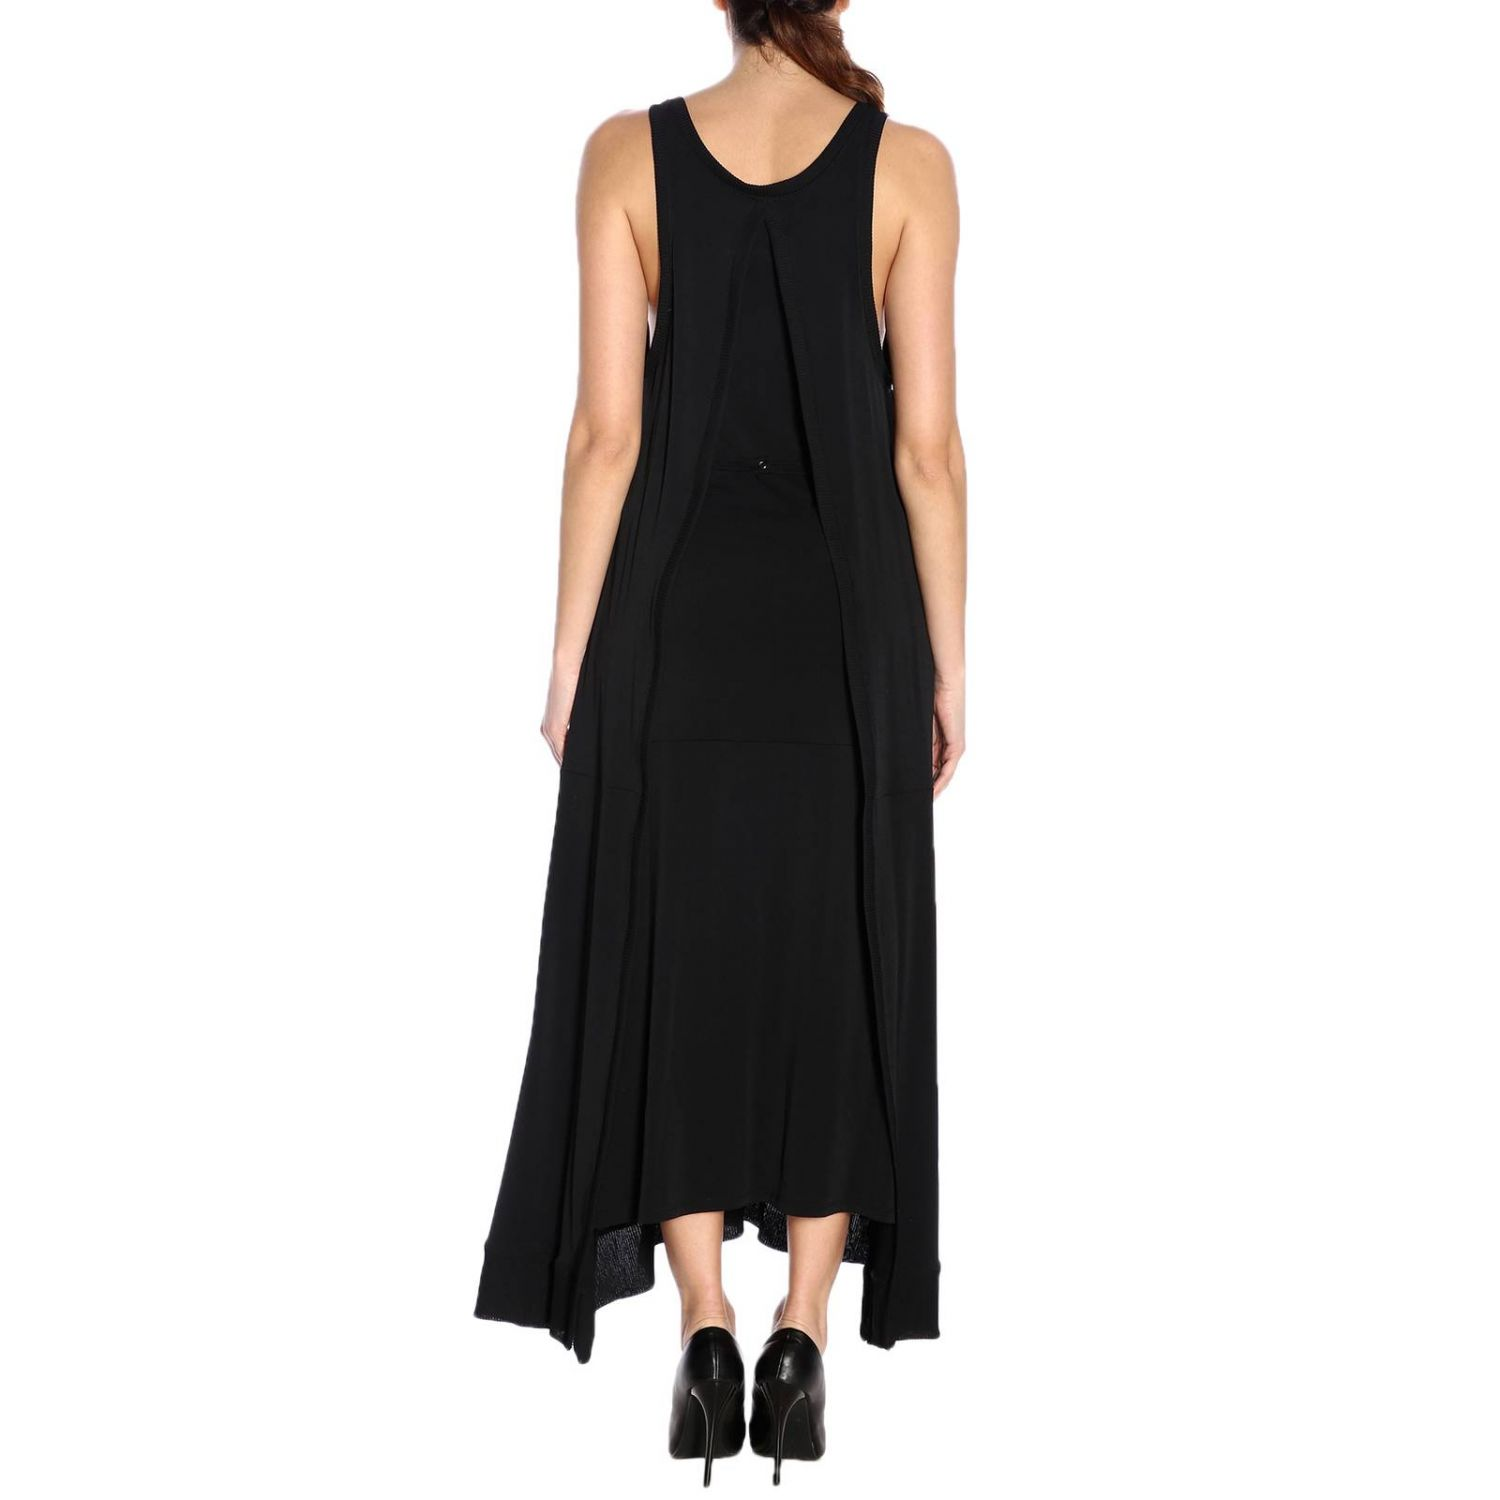 Dress women Paco Rabanne black 3